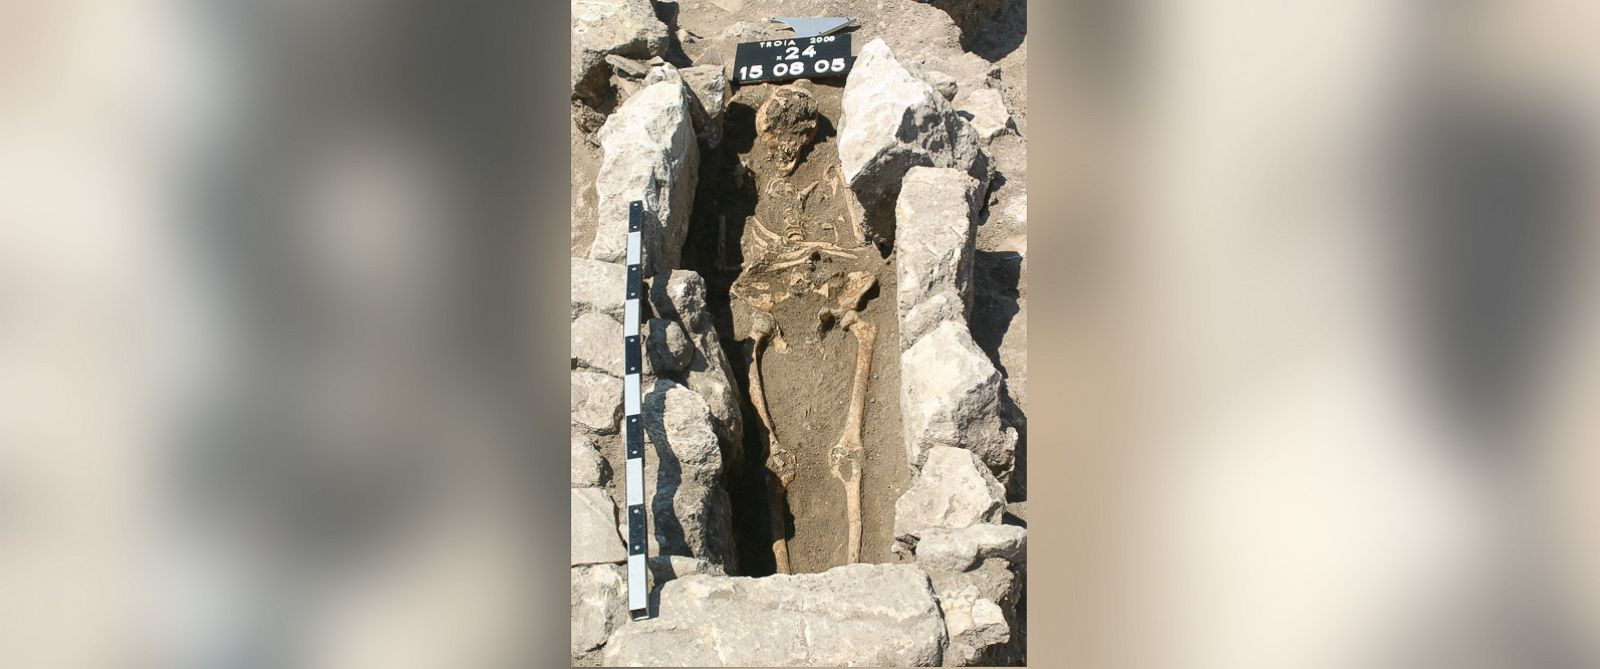 PHOTO: The skeleton of a woman who died 800 years ago on the outskirts of the ancient city of Troy in modern Turkey has yielded the first record of maternal sepsis in the fossil record.